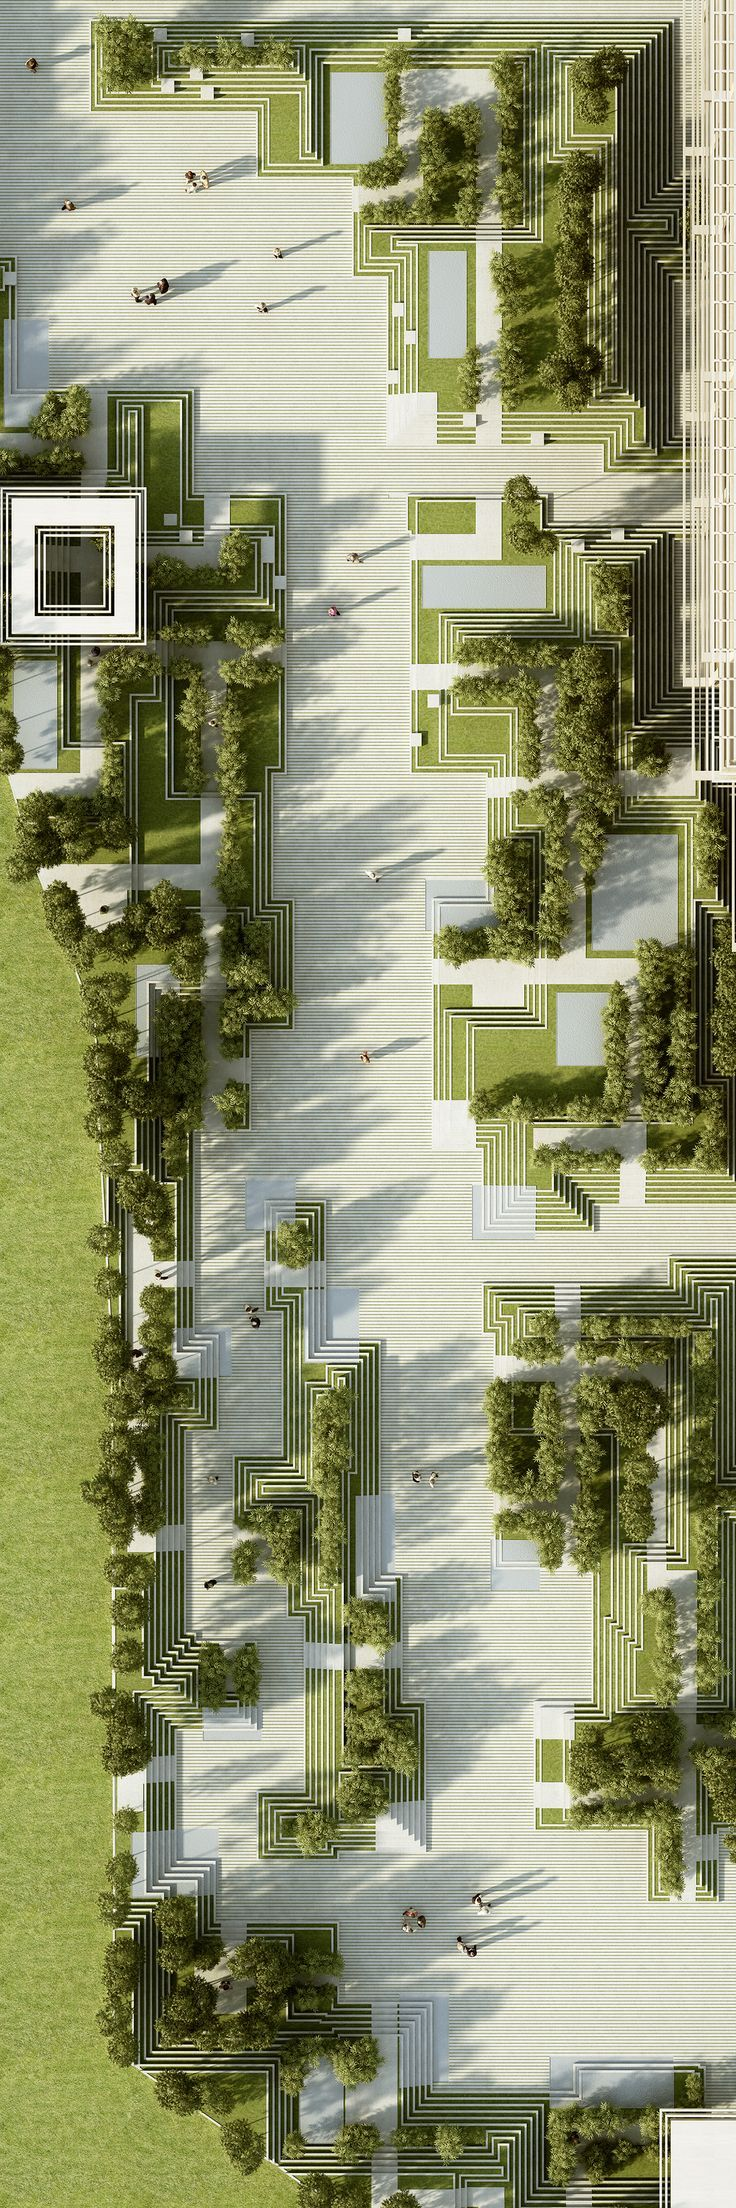 The project describes a landscape design and facade design for Landscape architects in india